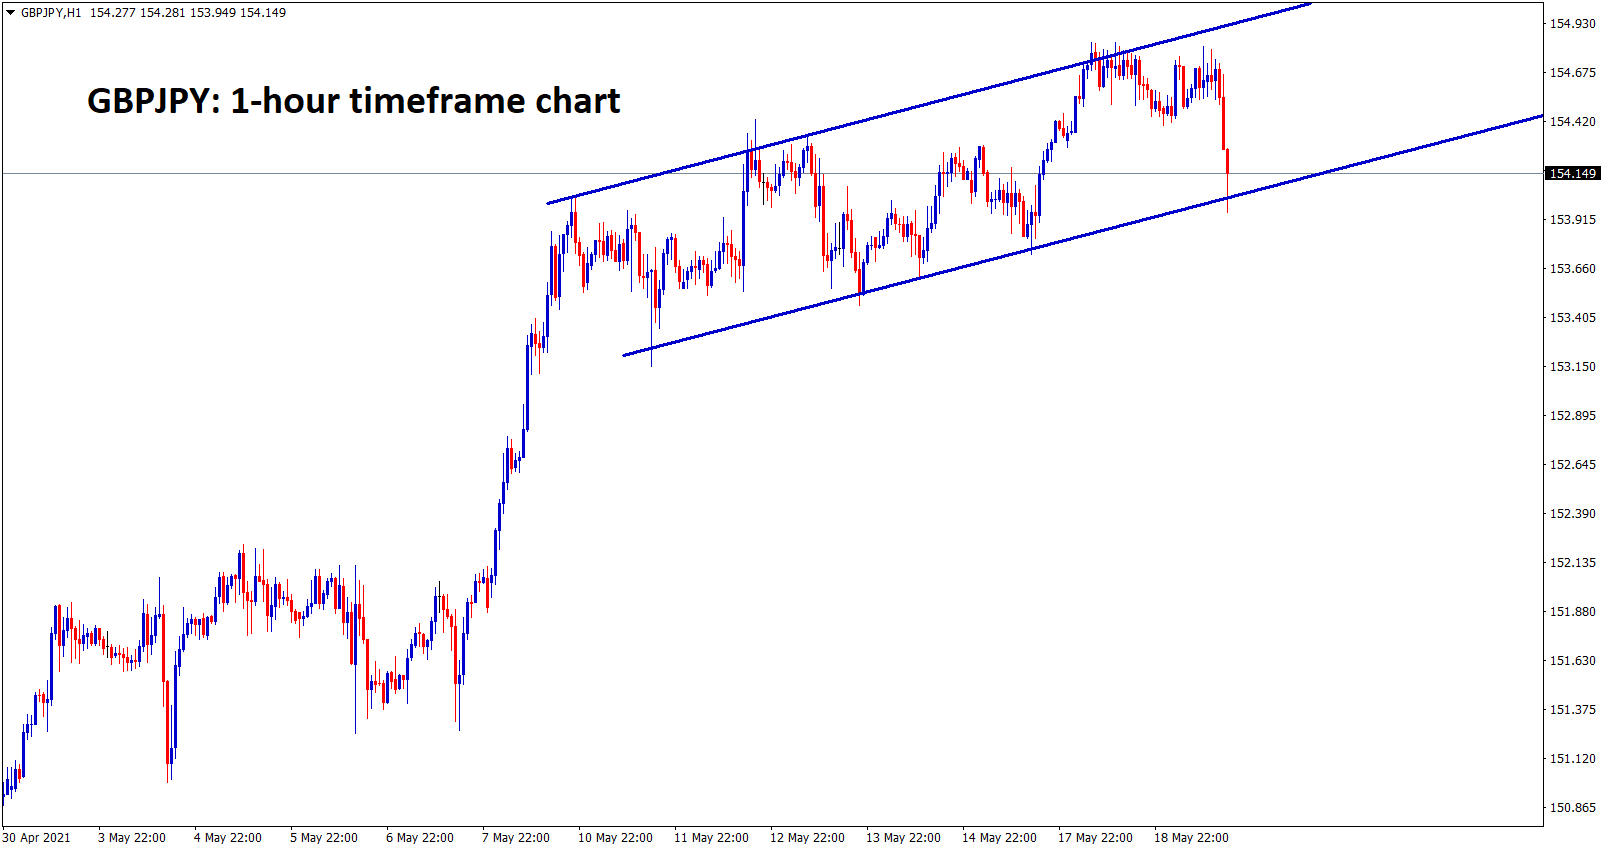 GBPJPY is moving in an ascending hcannel range. wait for the breakout